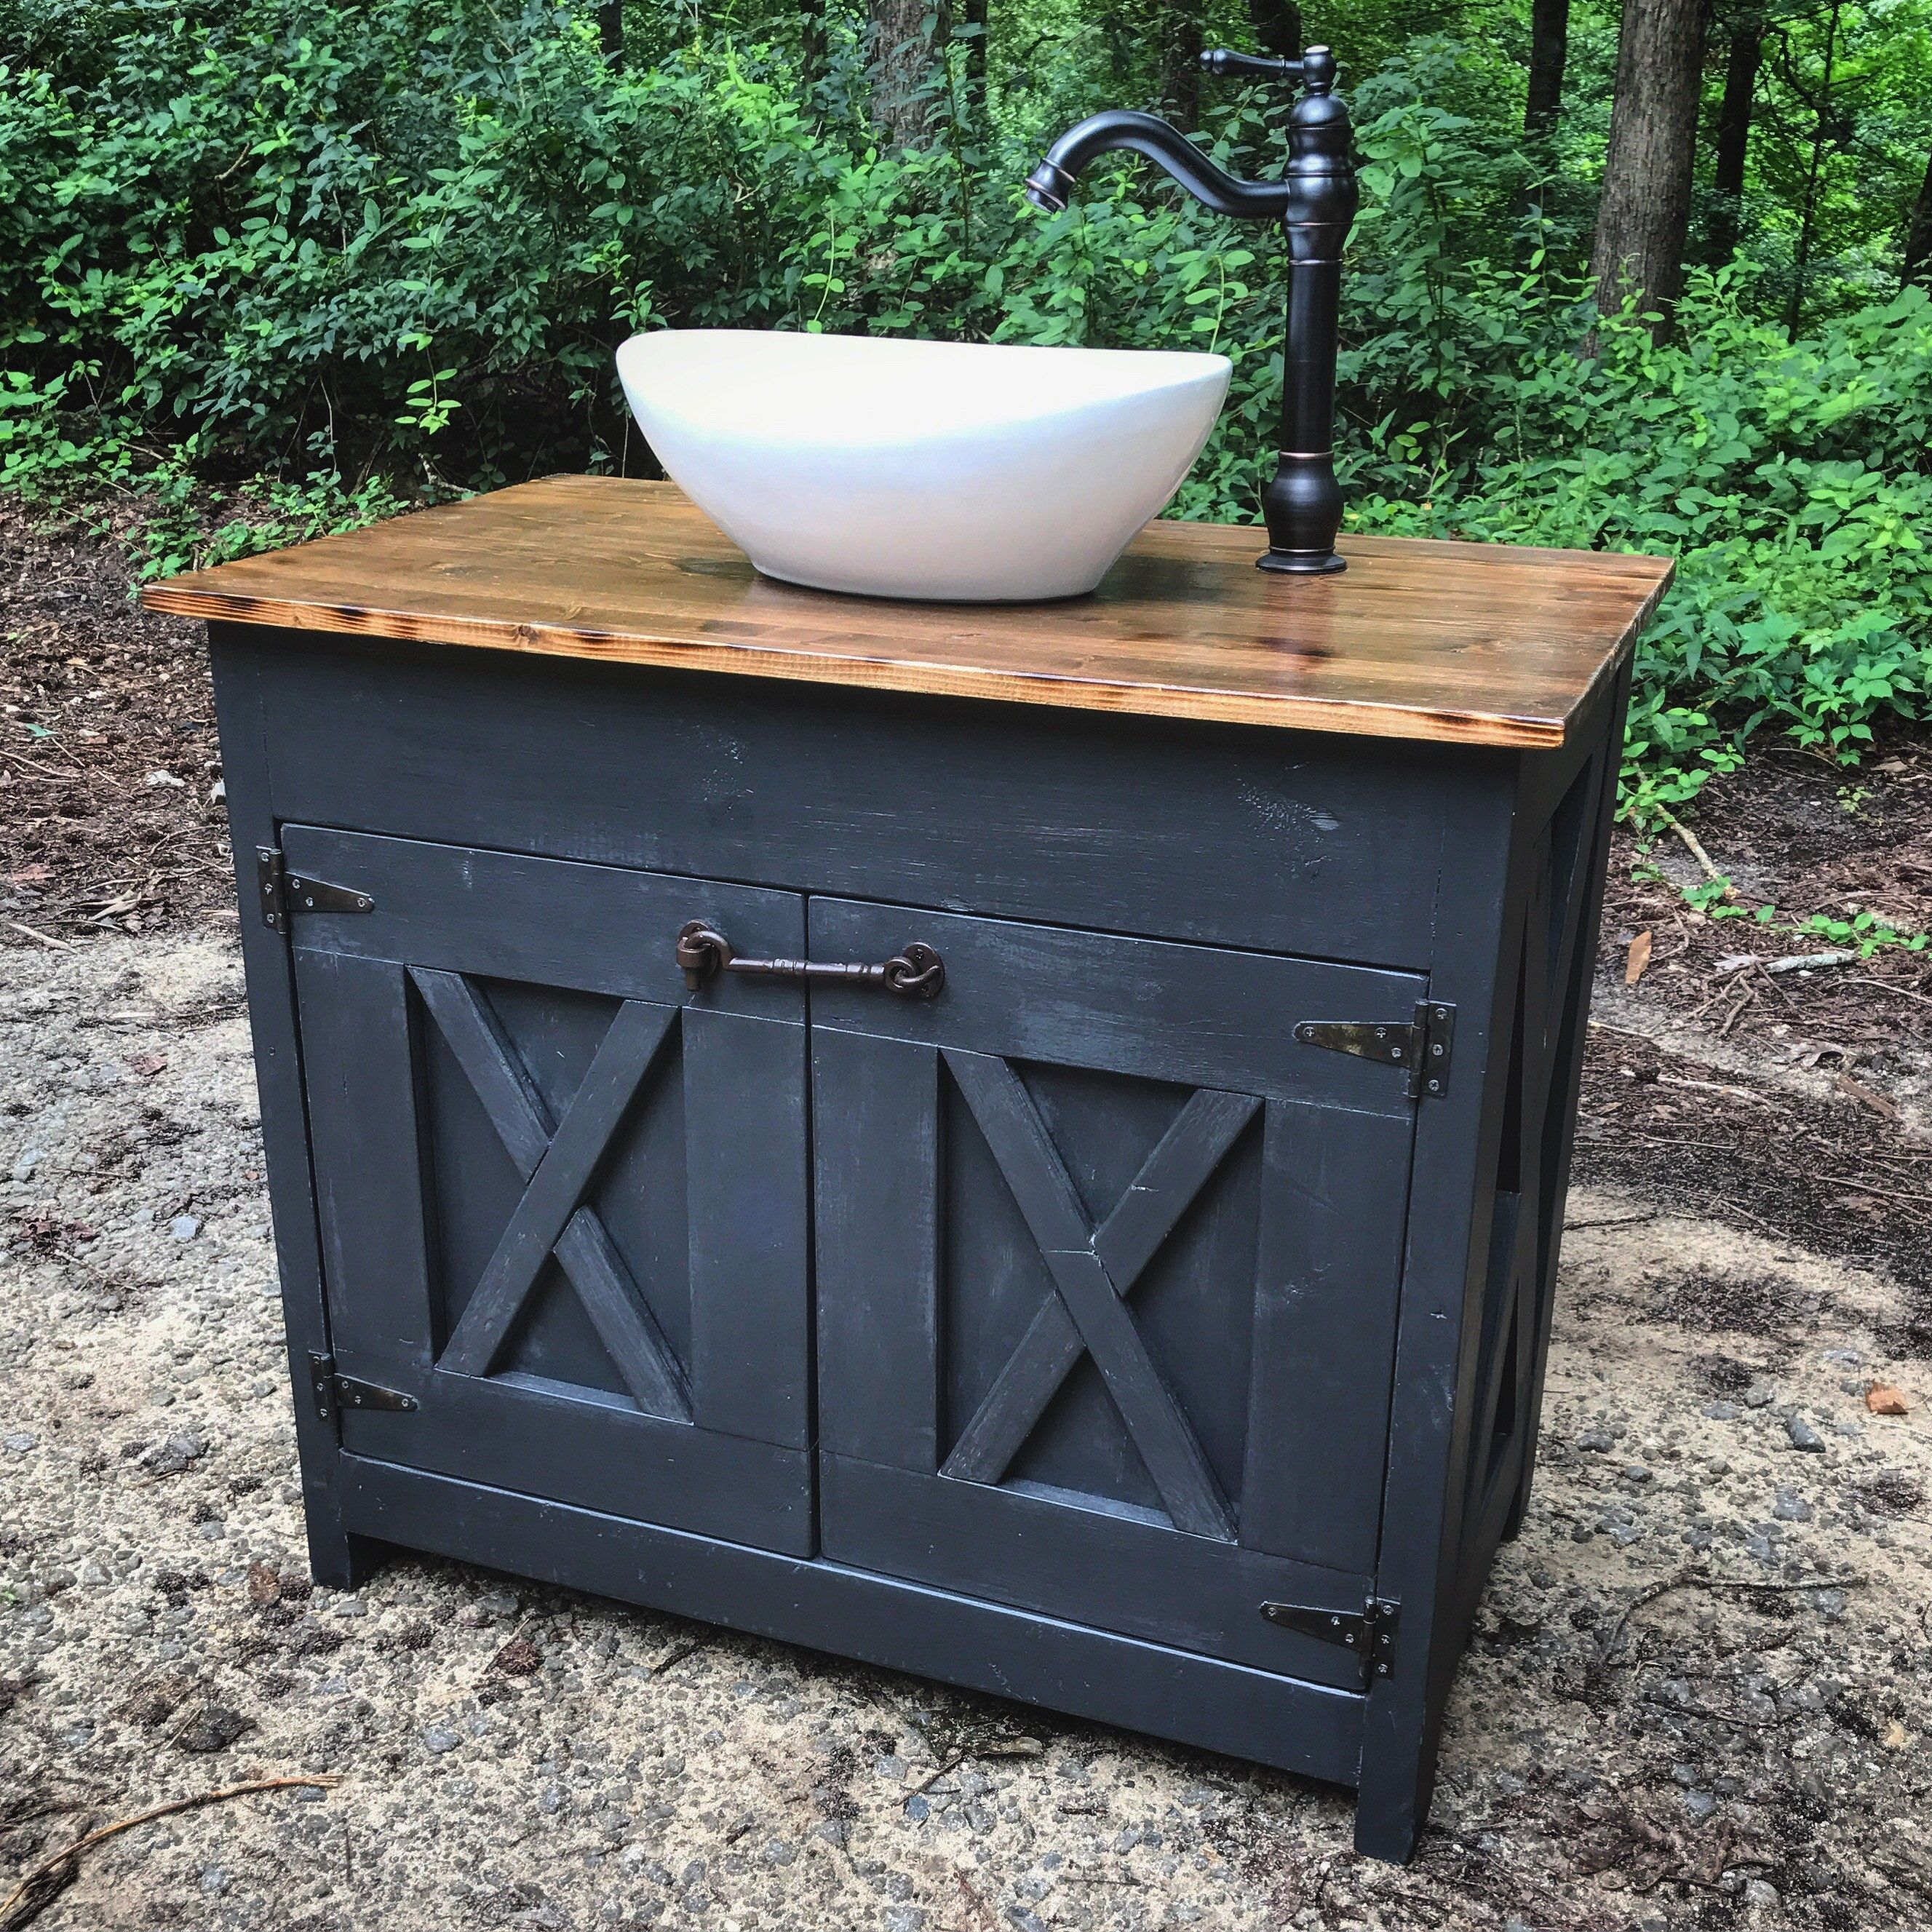 3 Foot Wide Vanity Single Sink 36 Wide 22 Deep 30 Inches Tall All Other Diffe Farmhouse Bathroom Vanity Bathroom Farmhouse Style Diy Bathroom Vanity